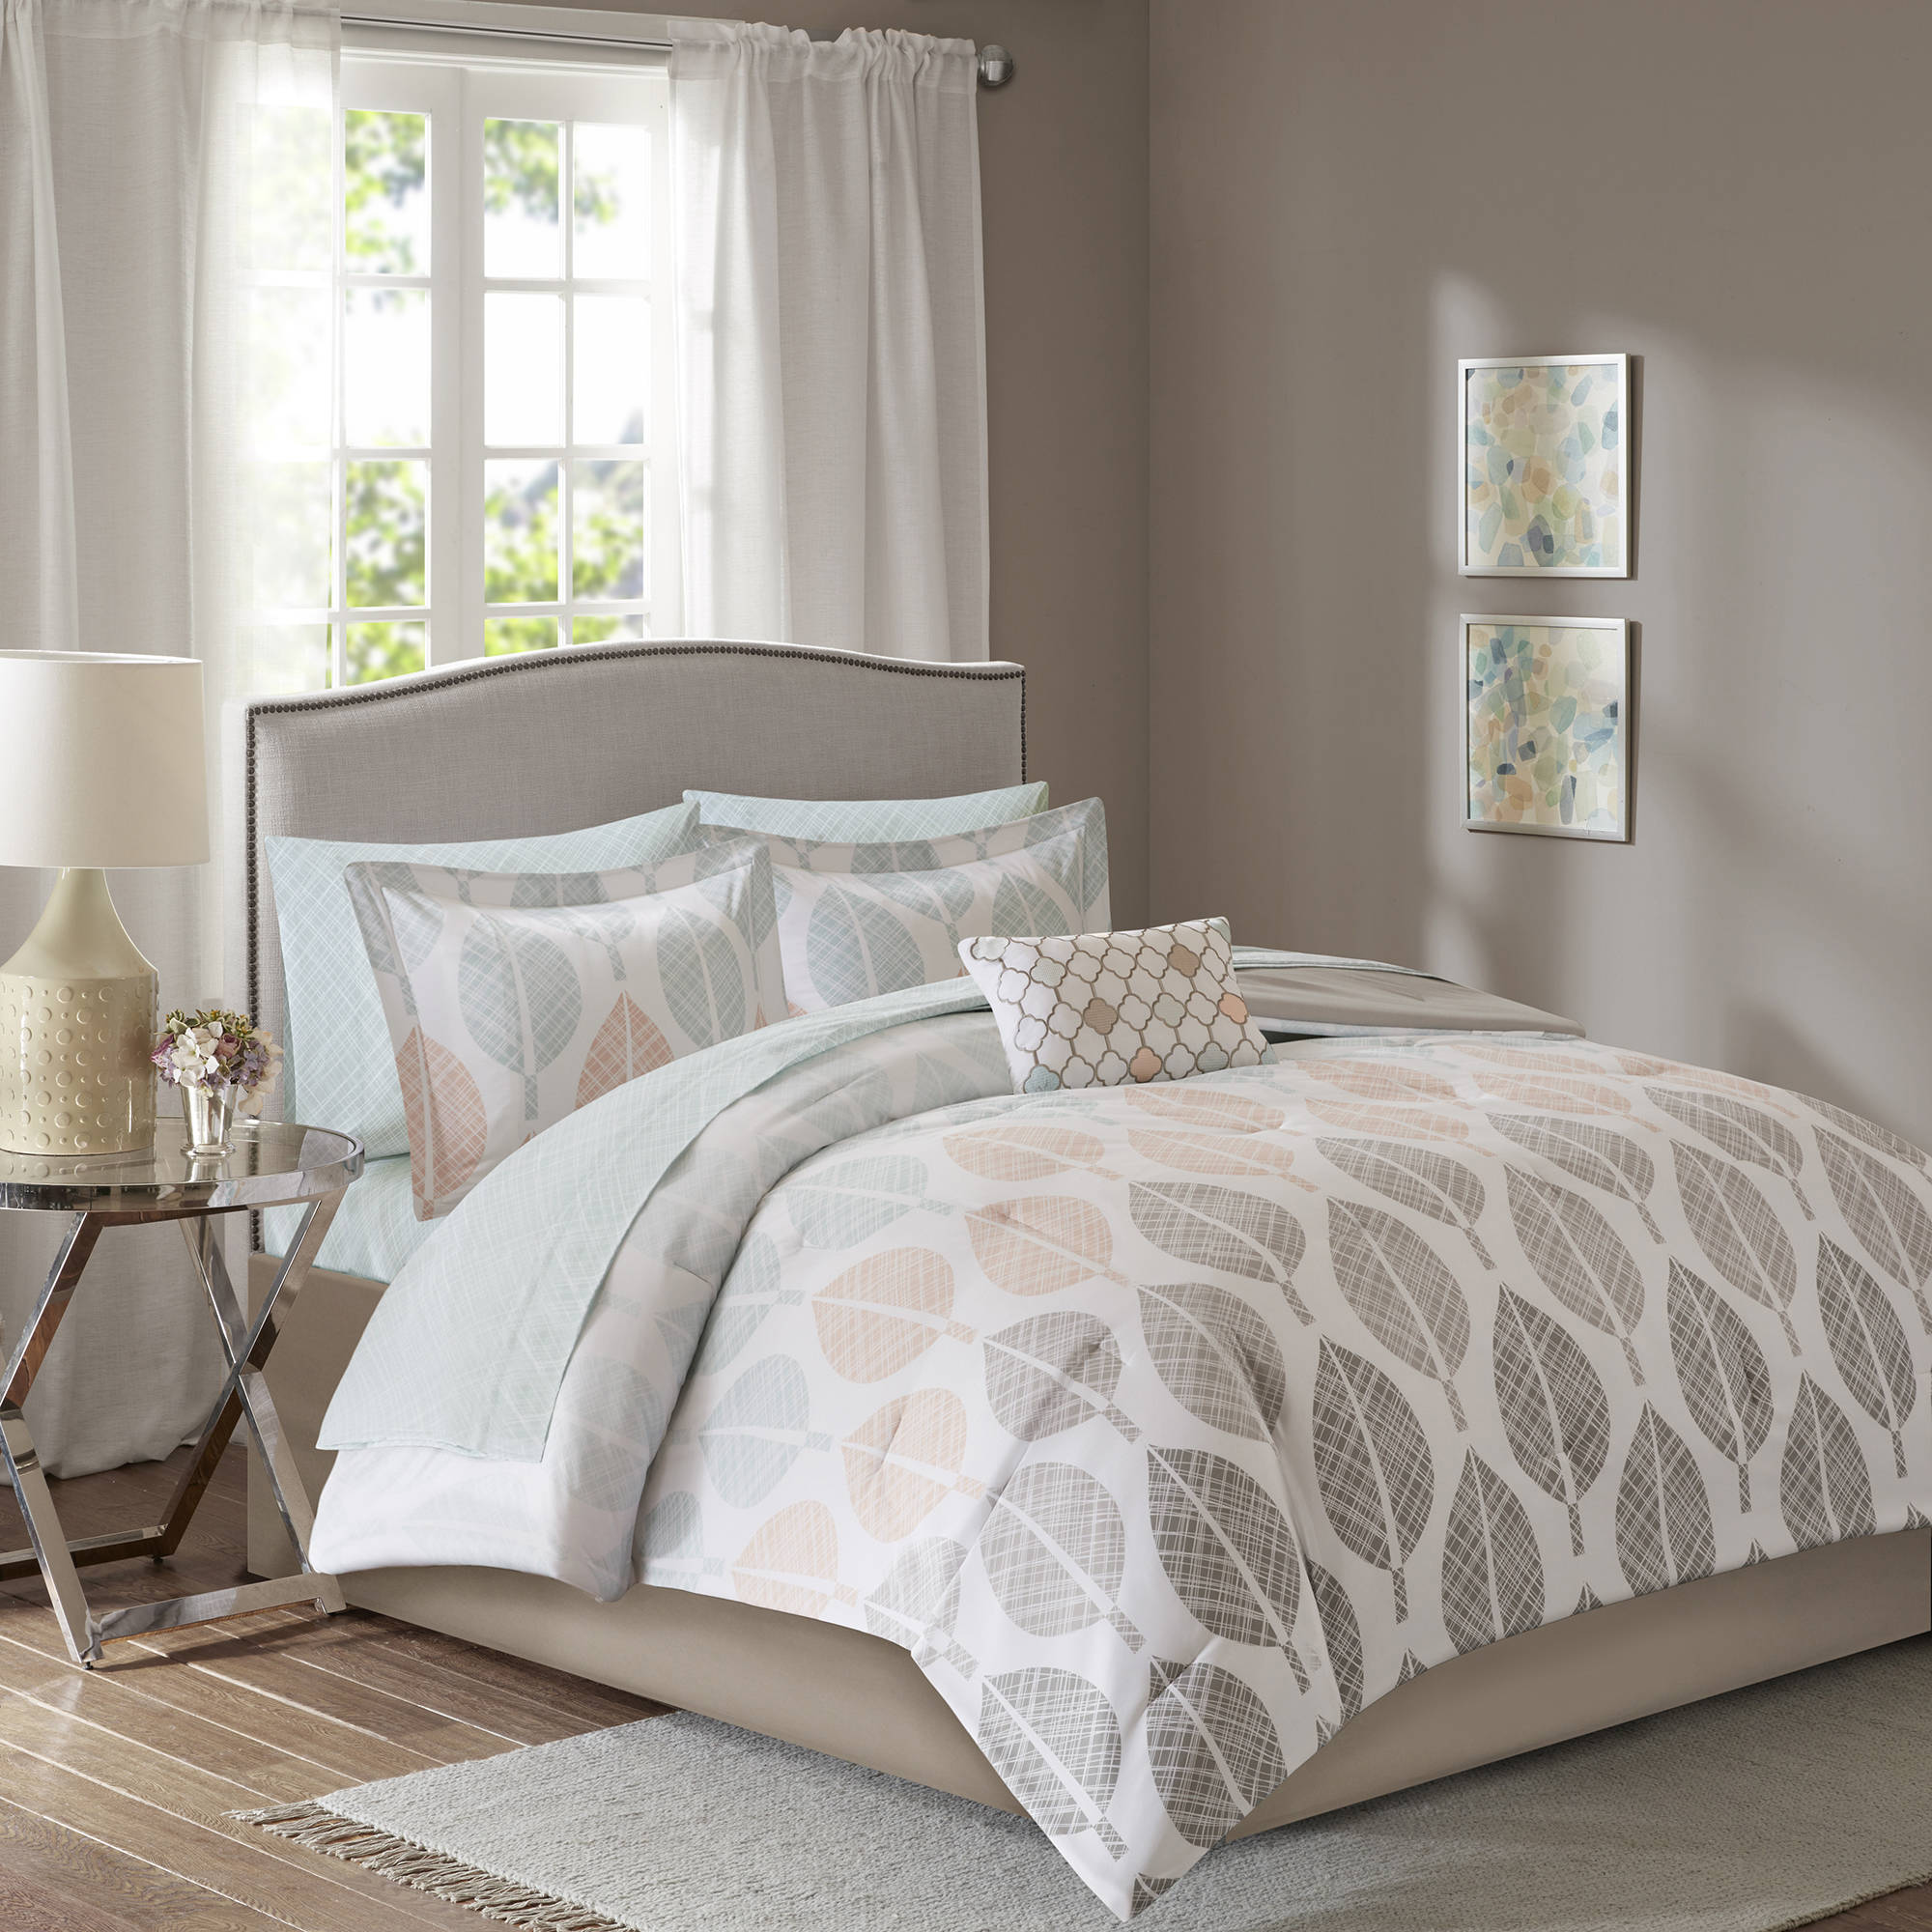 Home Essence Prospect Park Complete Bed and Sheet Set